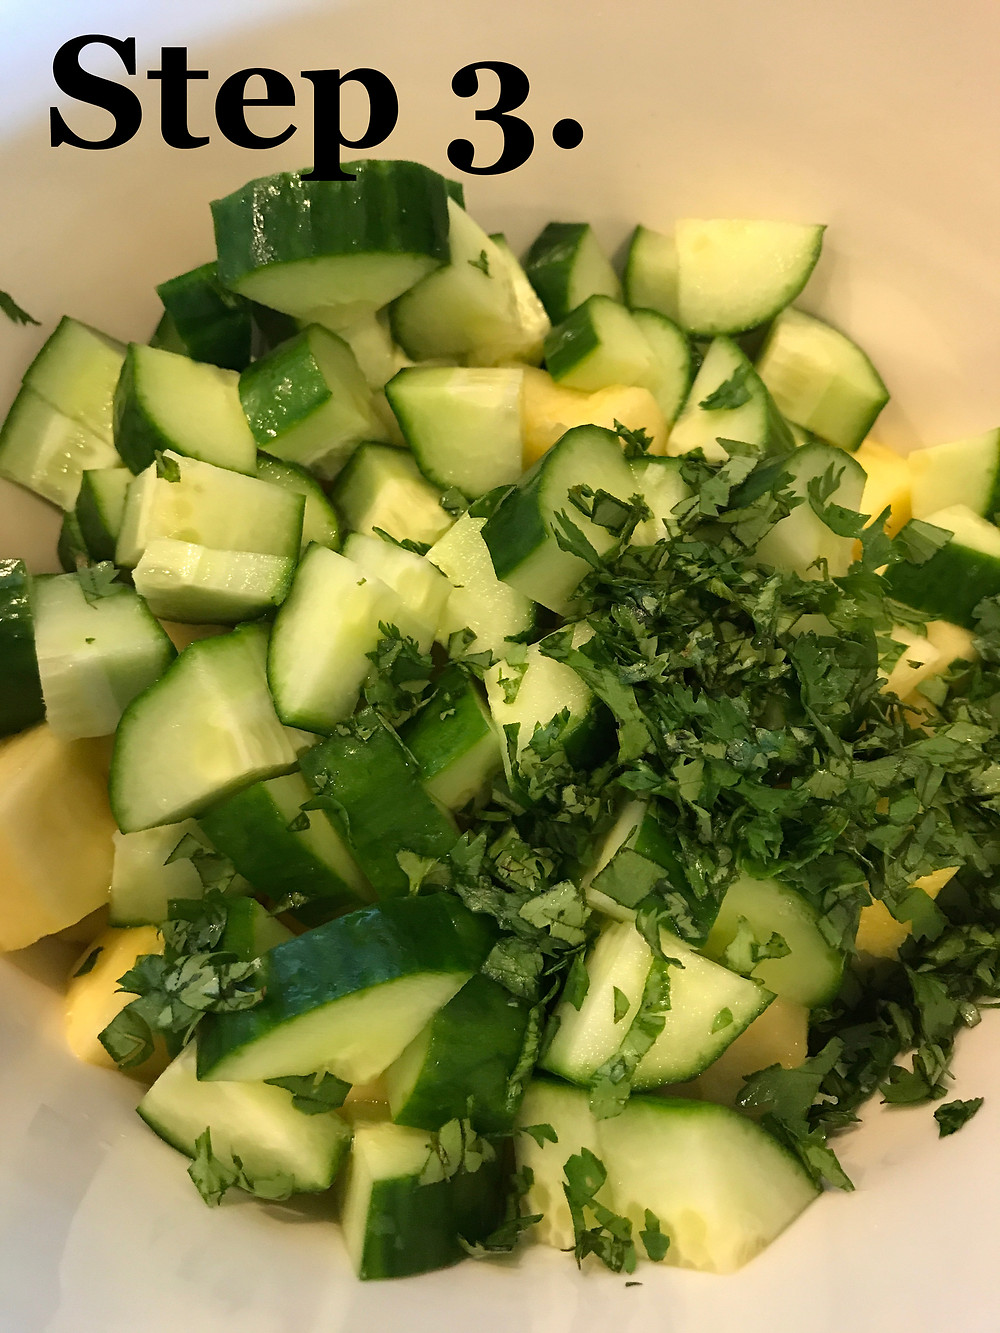 Add cilantro to cucumber and pineapple